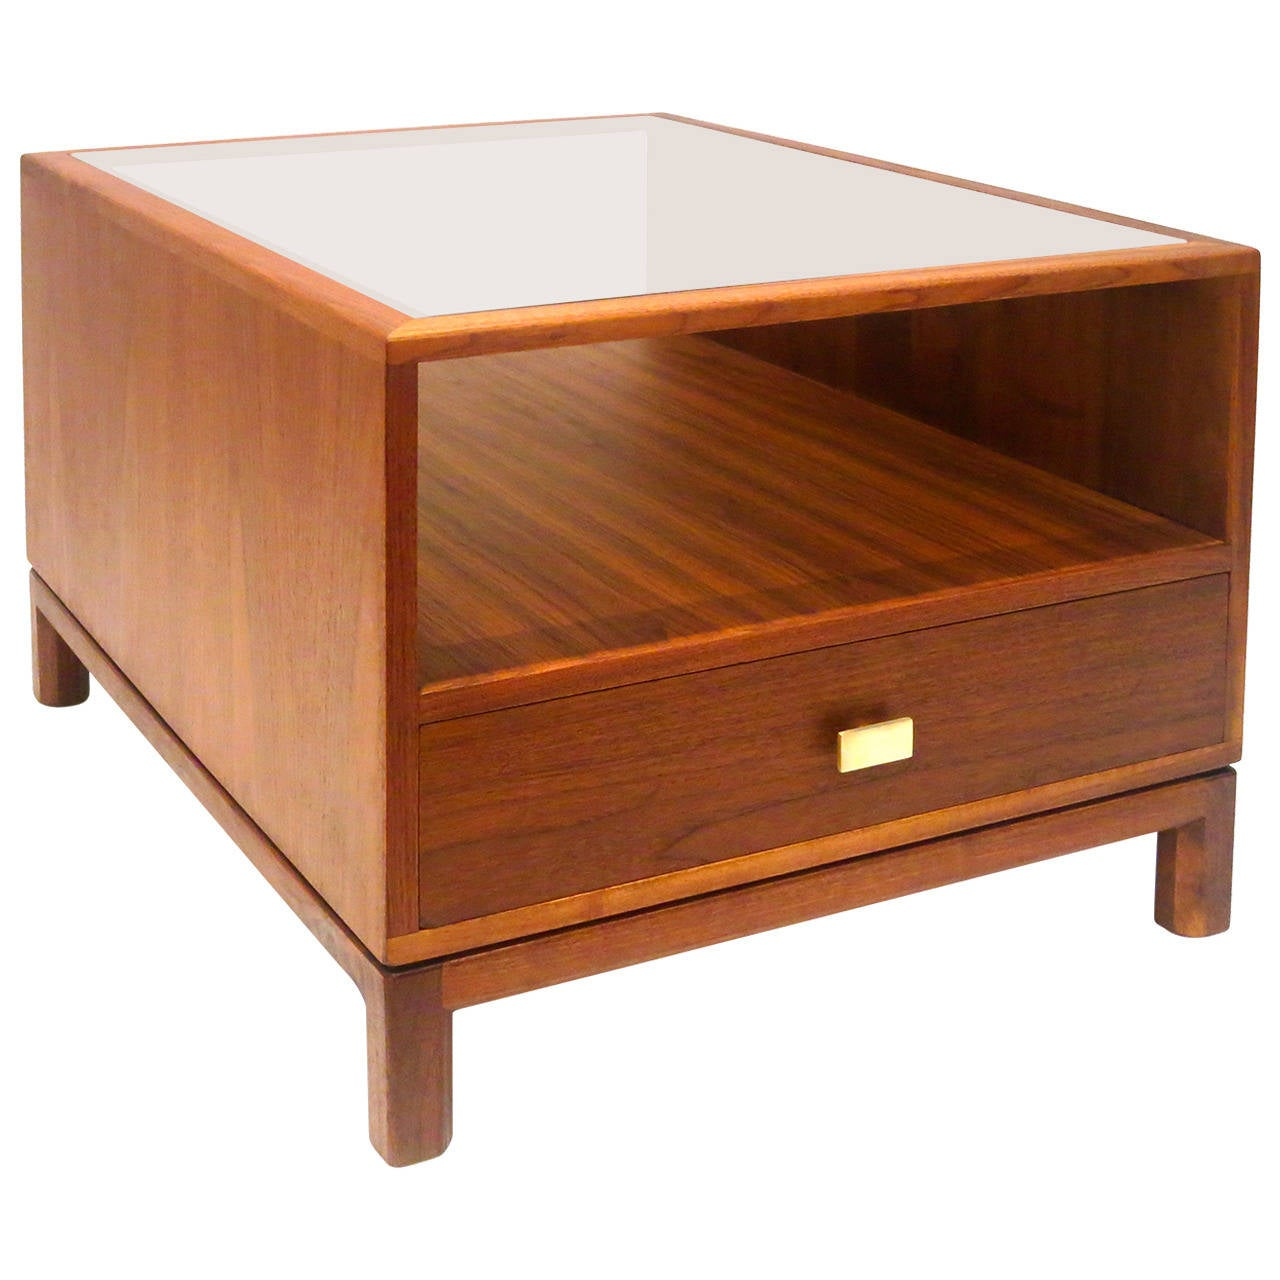 American modern walnut large cocktail table with smoked glass california design at 1stdibs Large glass coffee table